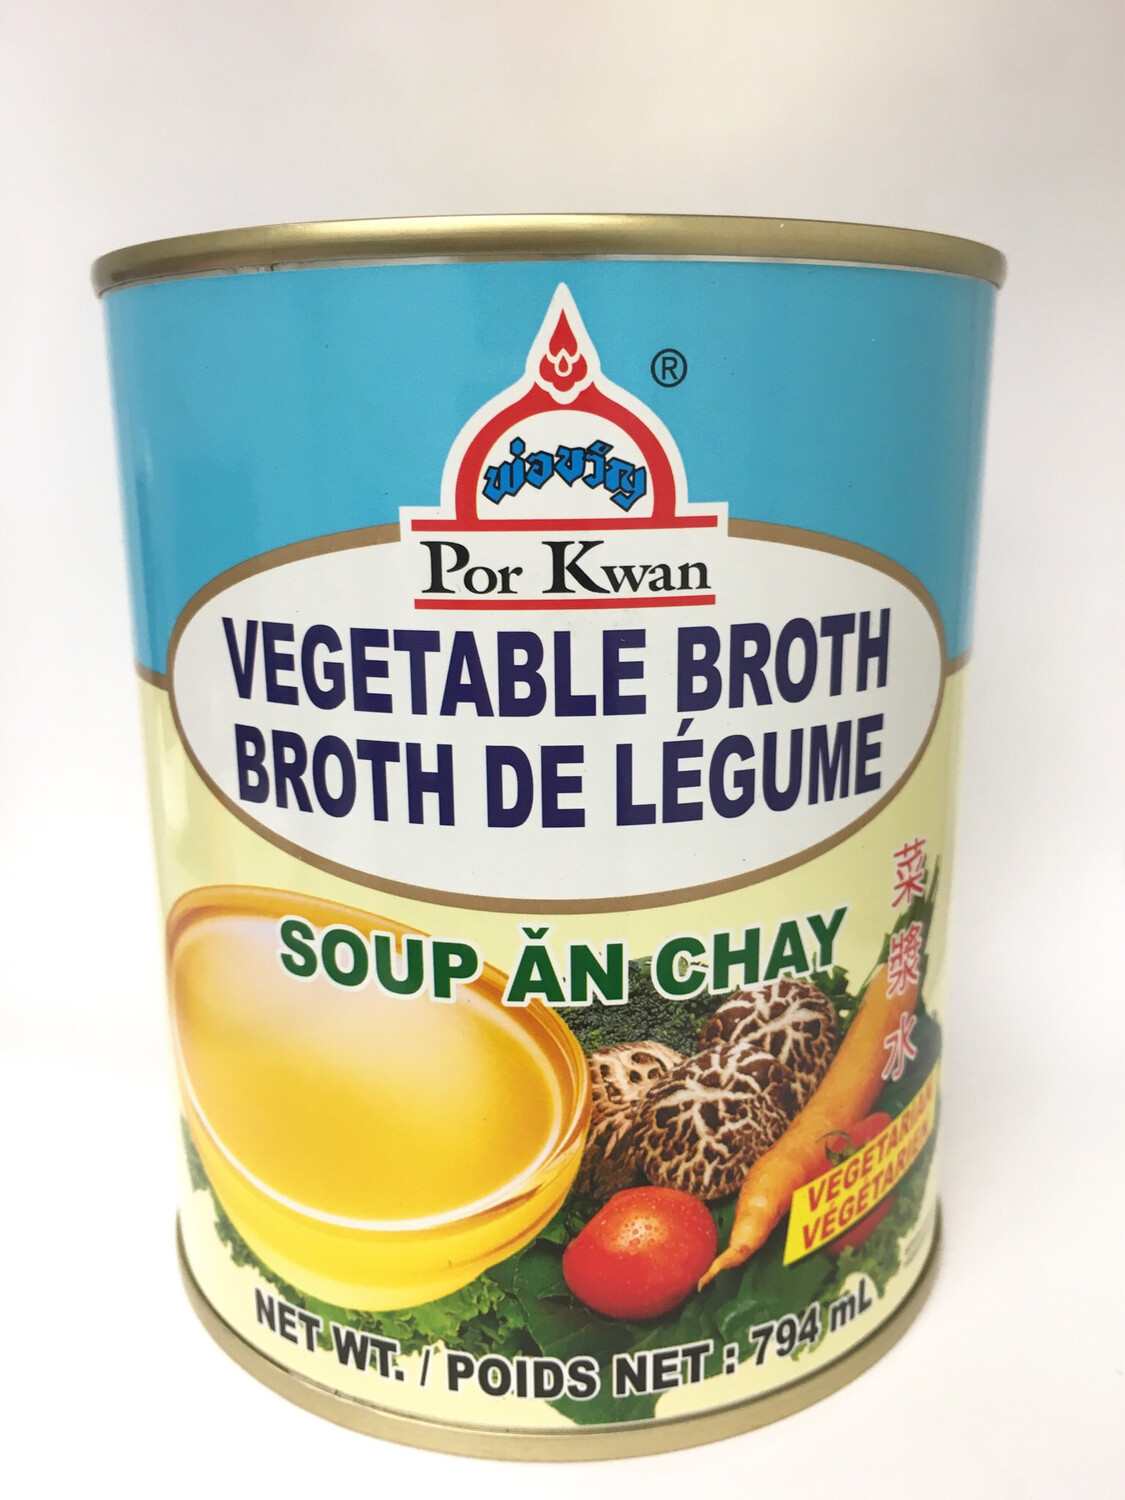 PORKWAN VEGTABLE BROTH 12X794G